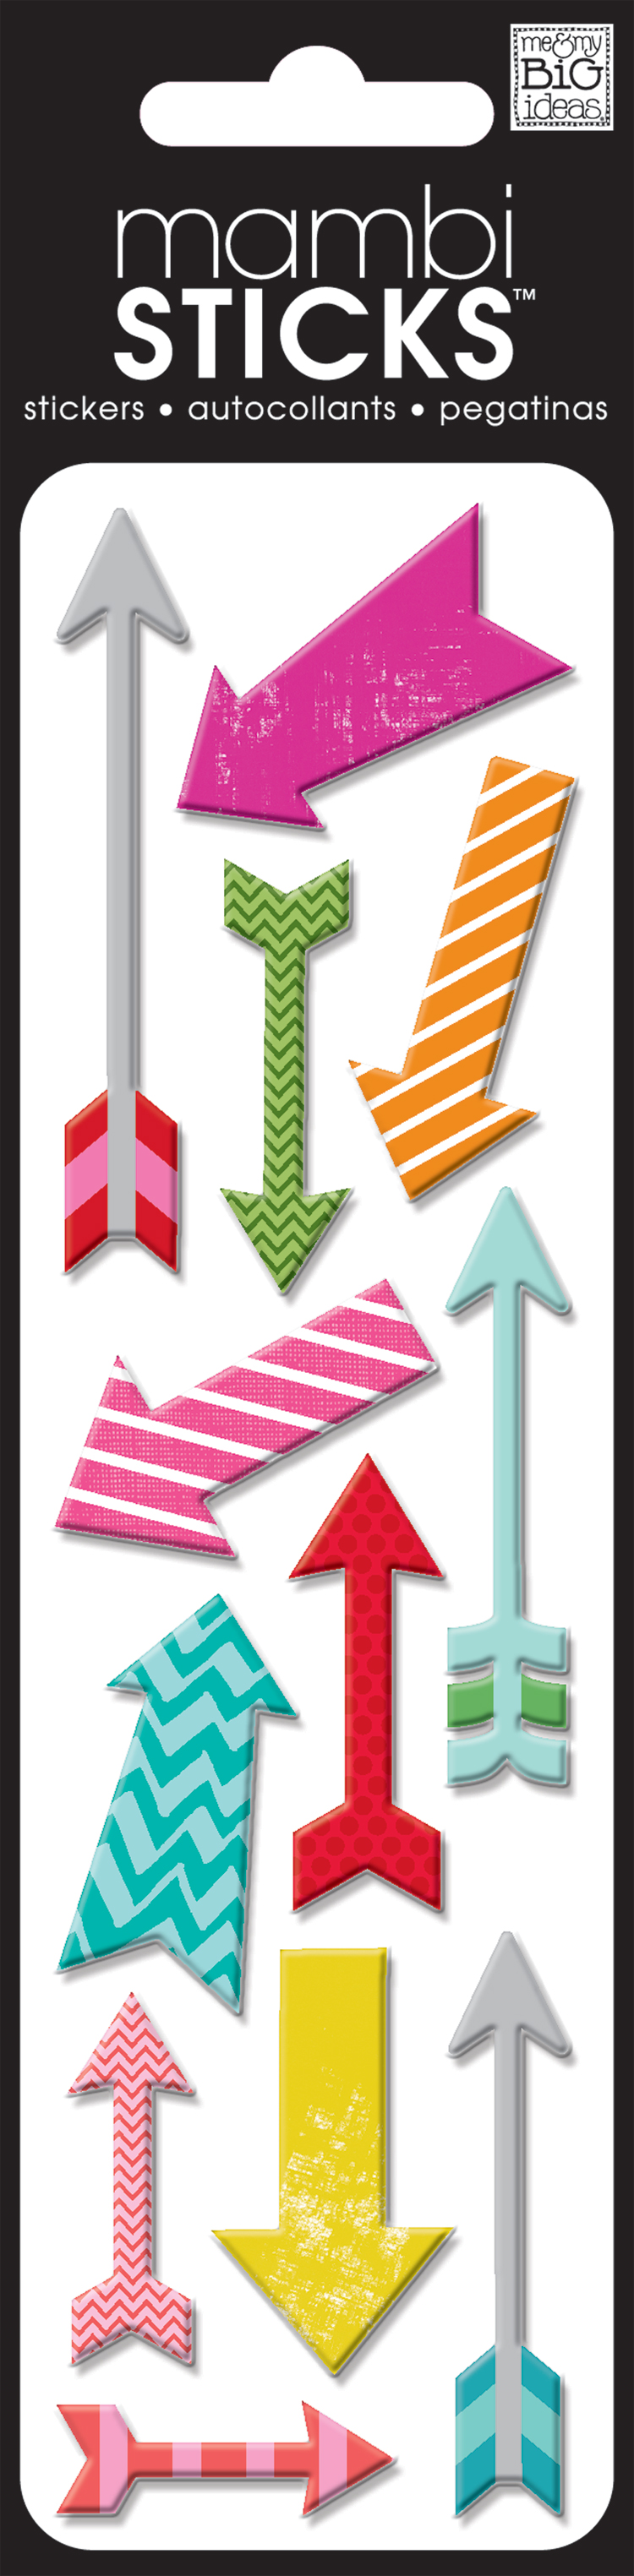 mambiSTICKS puffy arrow multi colored scrapbooking stickers.